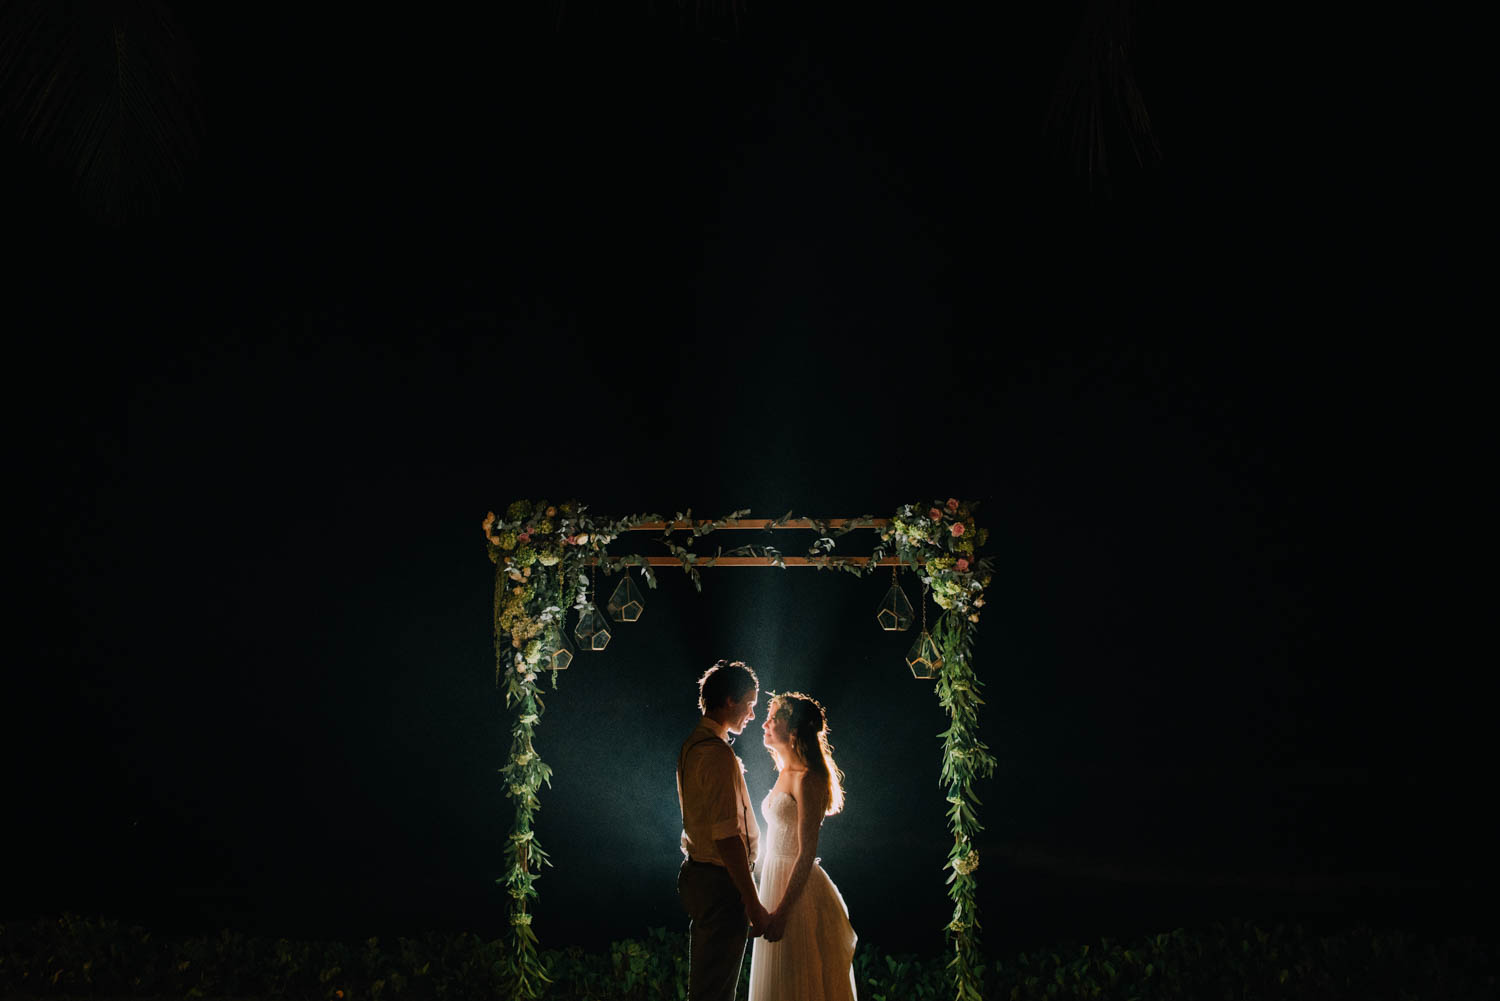 baliwedding-destination-diktatphotography-weddinginbali-baliweddingphotographer-villapusphapuri-130